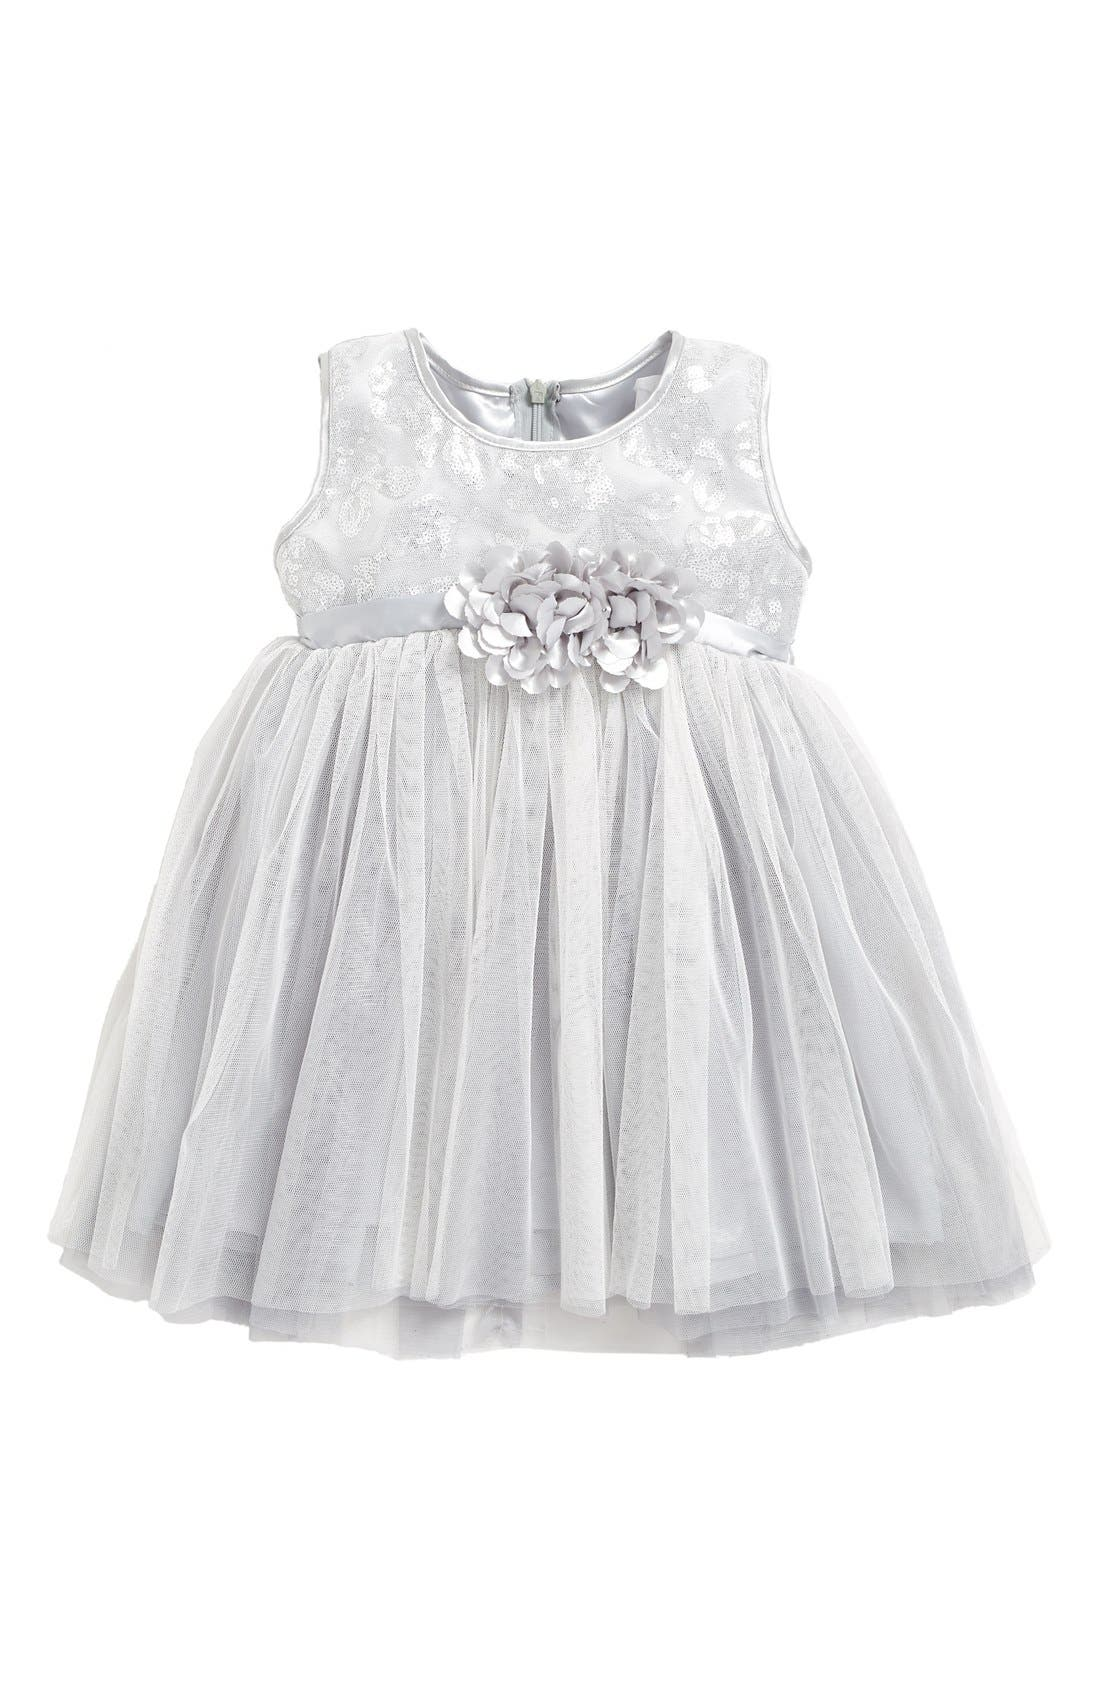 Popatu Empire Waist Tulle Dress (Baby Girls)